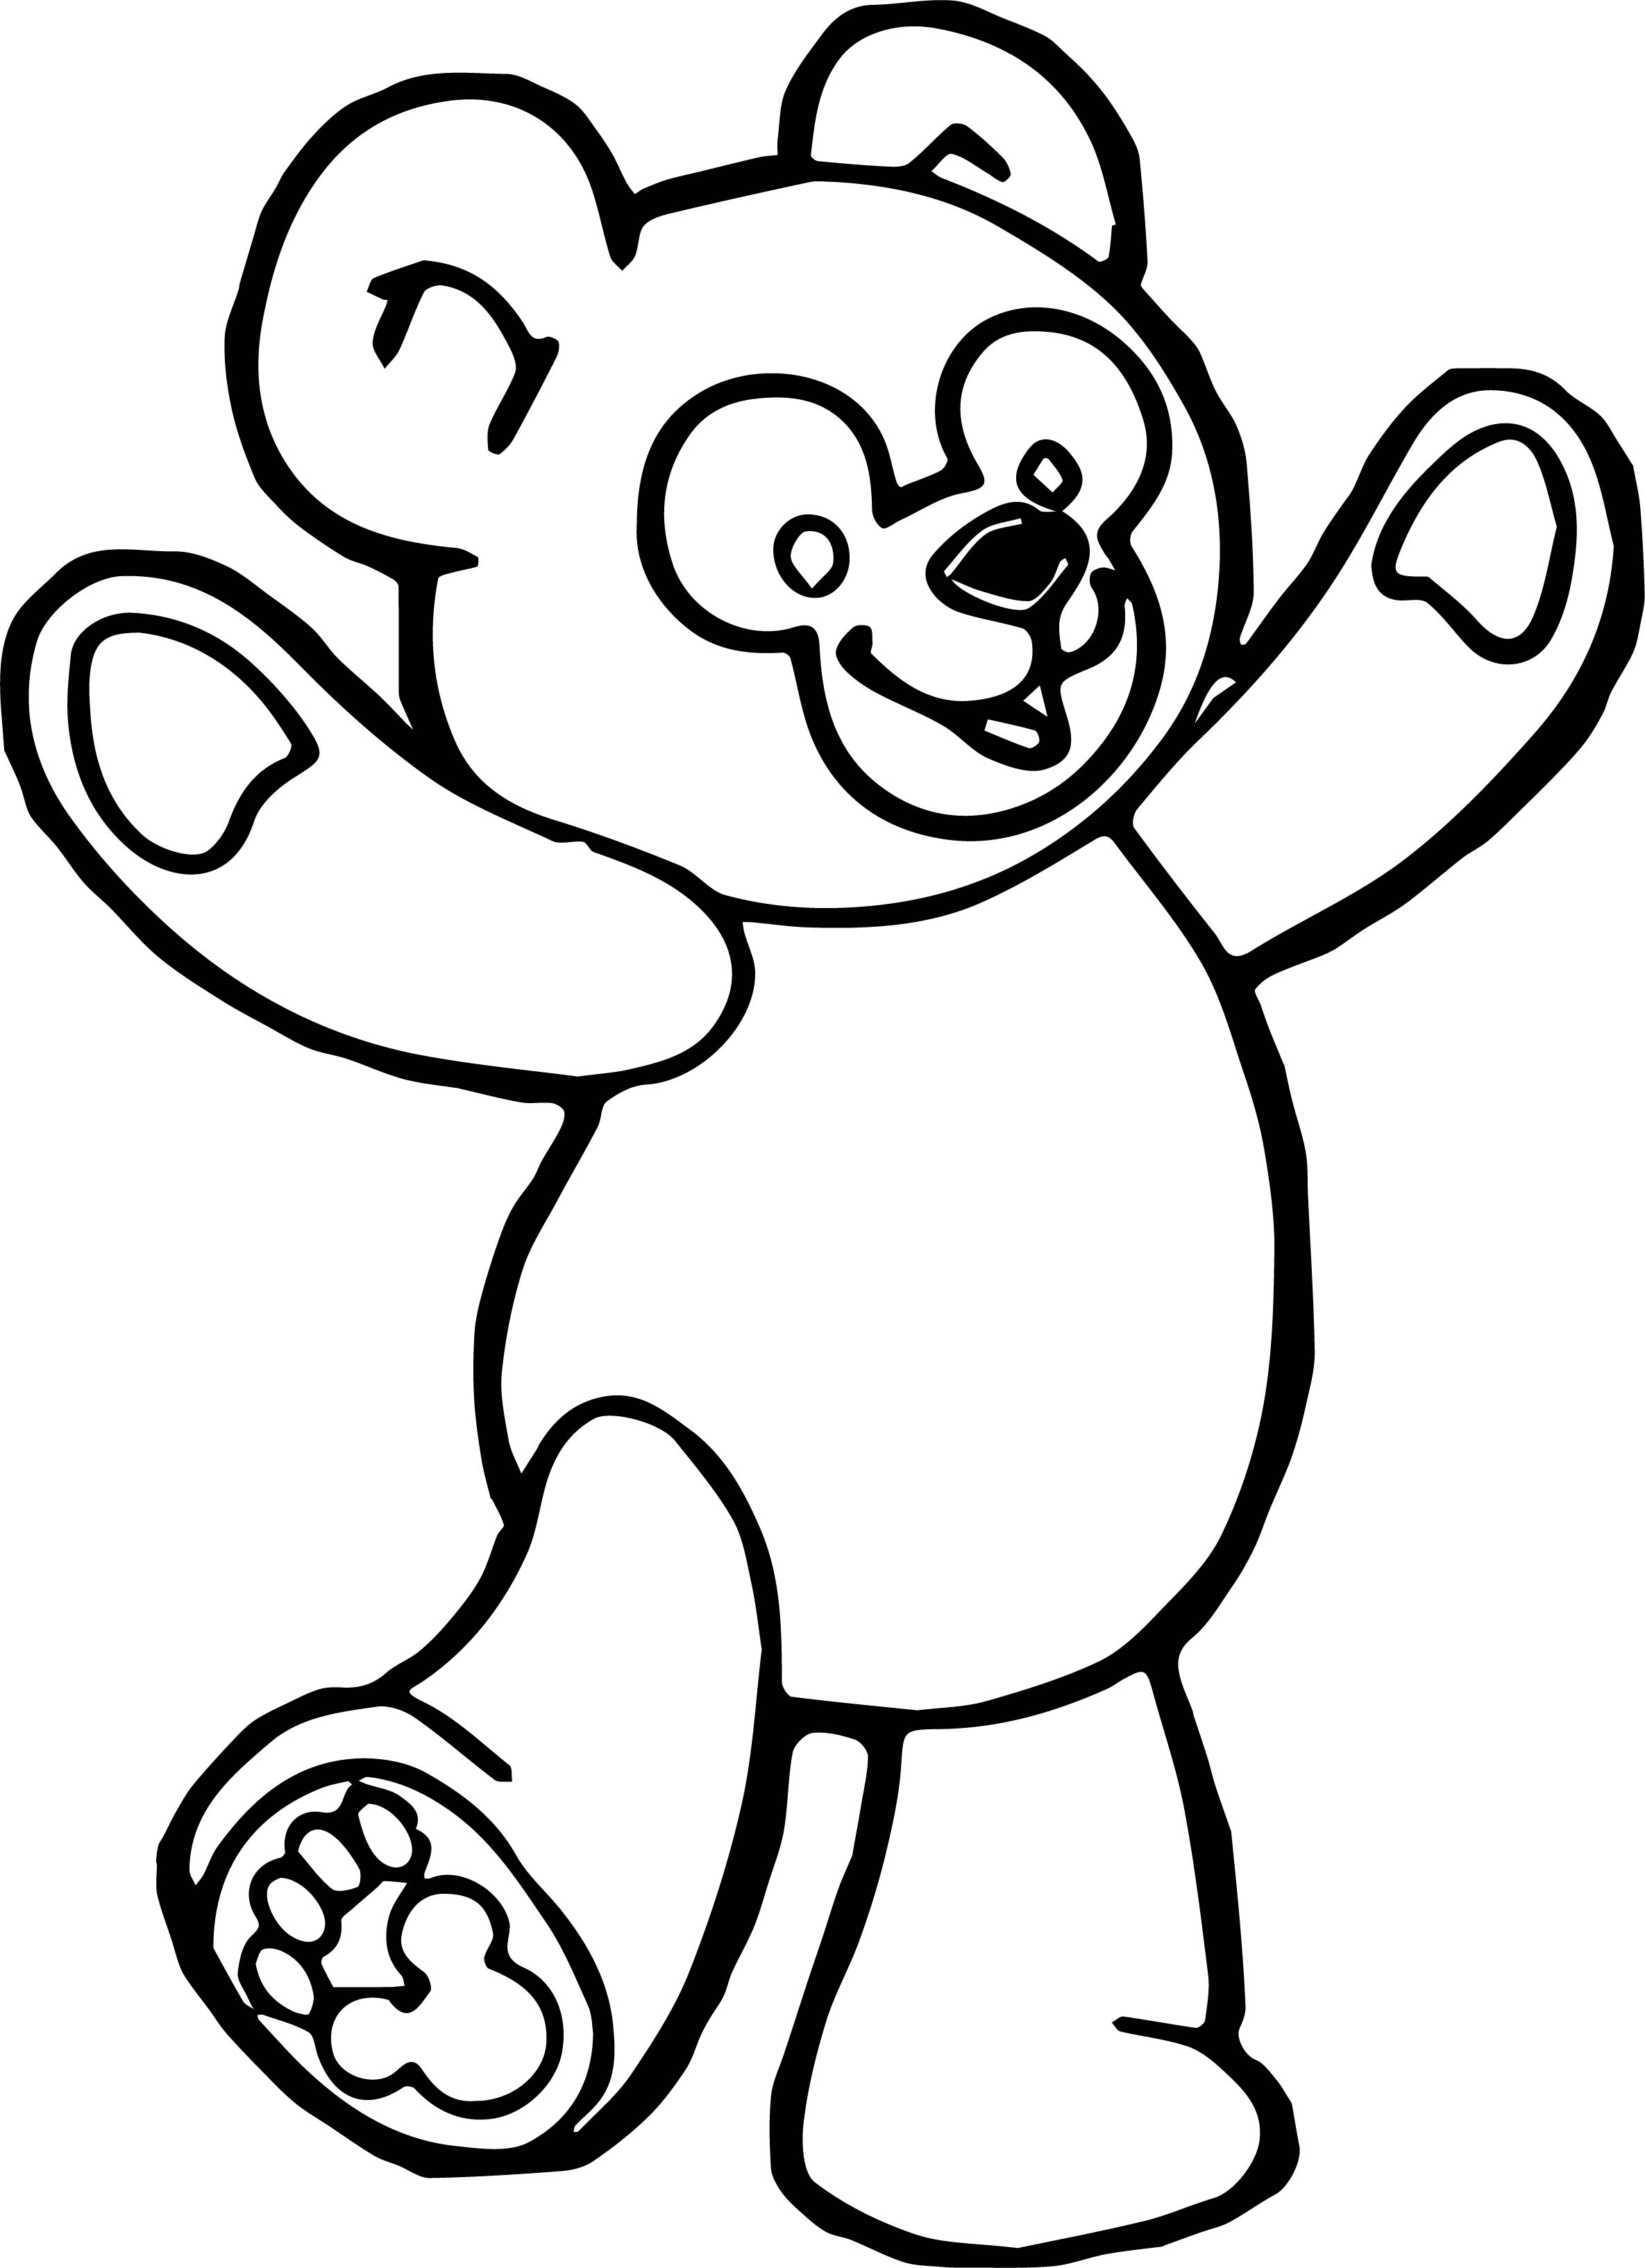 Cartoon standing bear coloring pages ~ Happy Bear Standing Coloring Page | Wecoloringpage.com